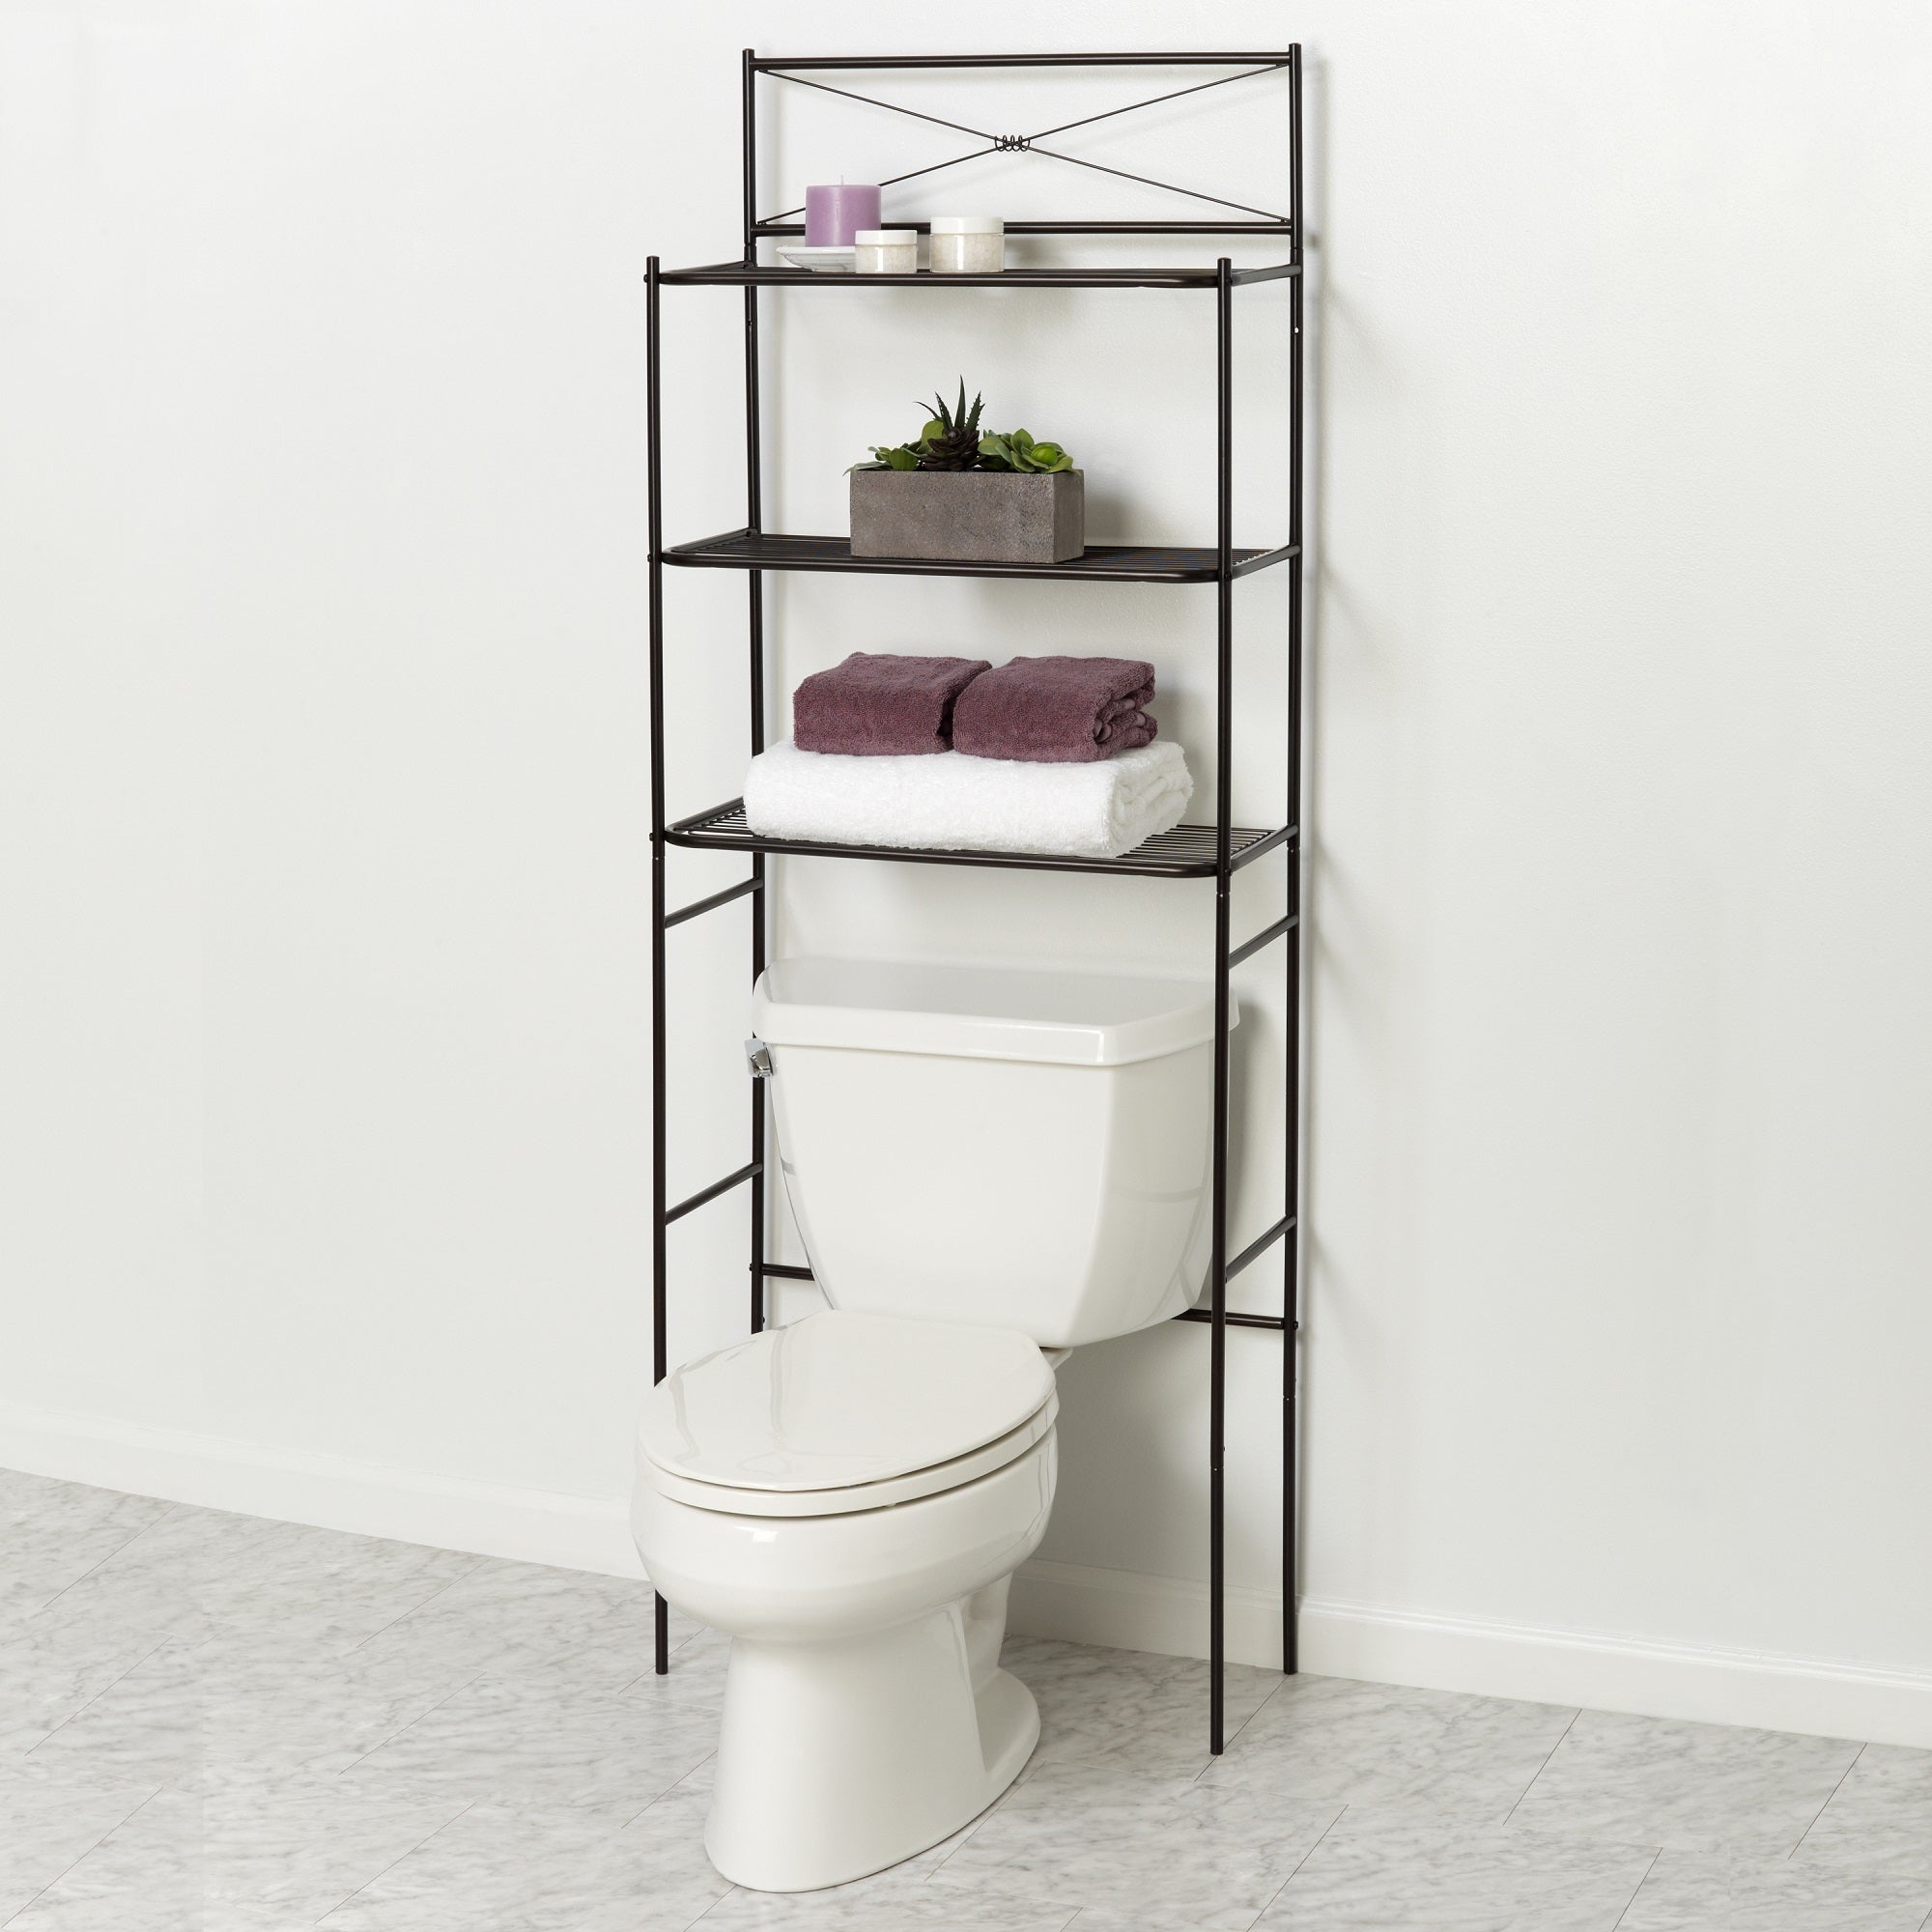 shelves interesting building floating cabinet space household storage stylish and shelf of spacesaver your by over the benjamin reality daydream simple africa amazing most a south new also bathroom saver toilet eyagci cabinets in book com cove ebay for